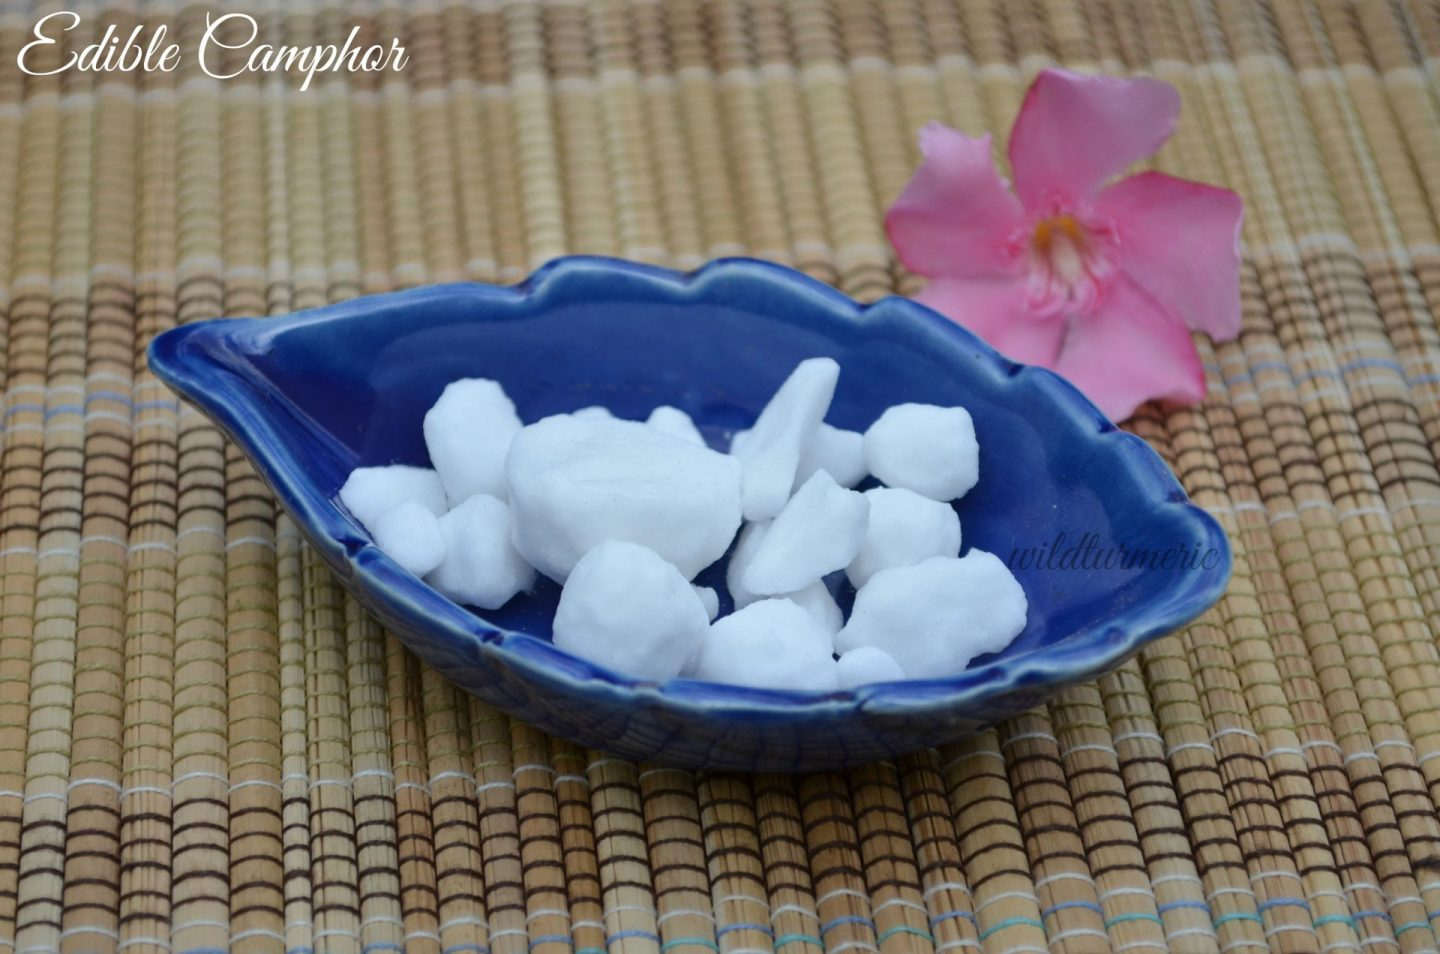 edible camphor for skin care